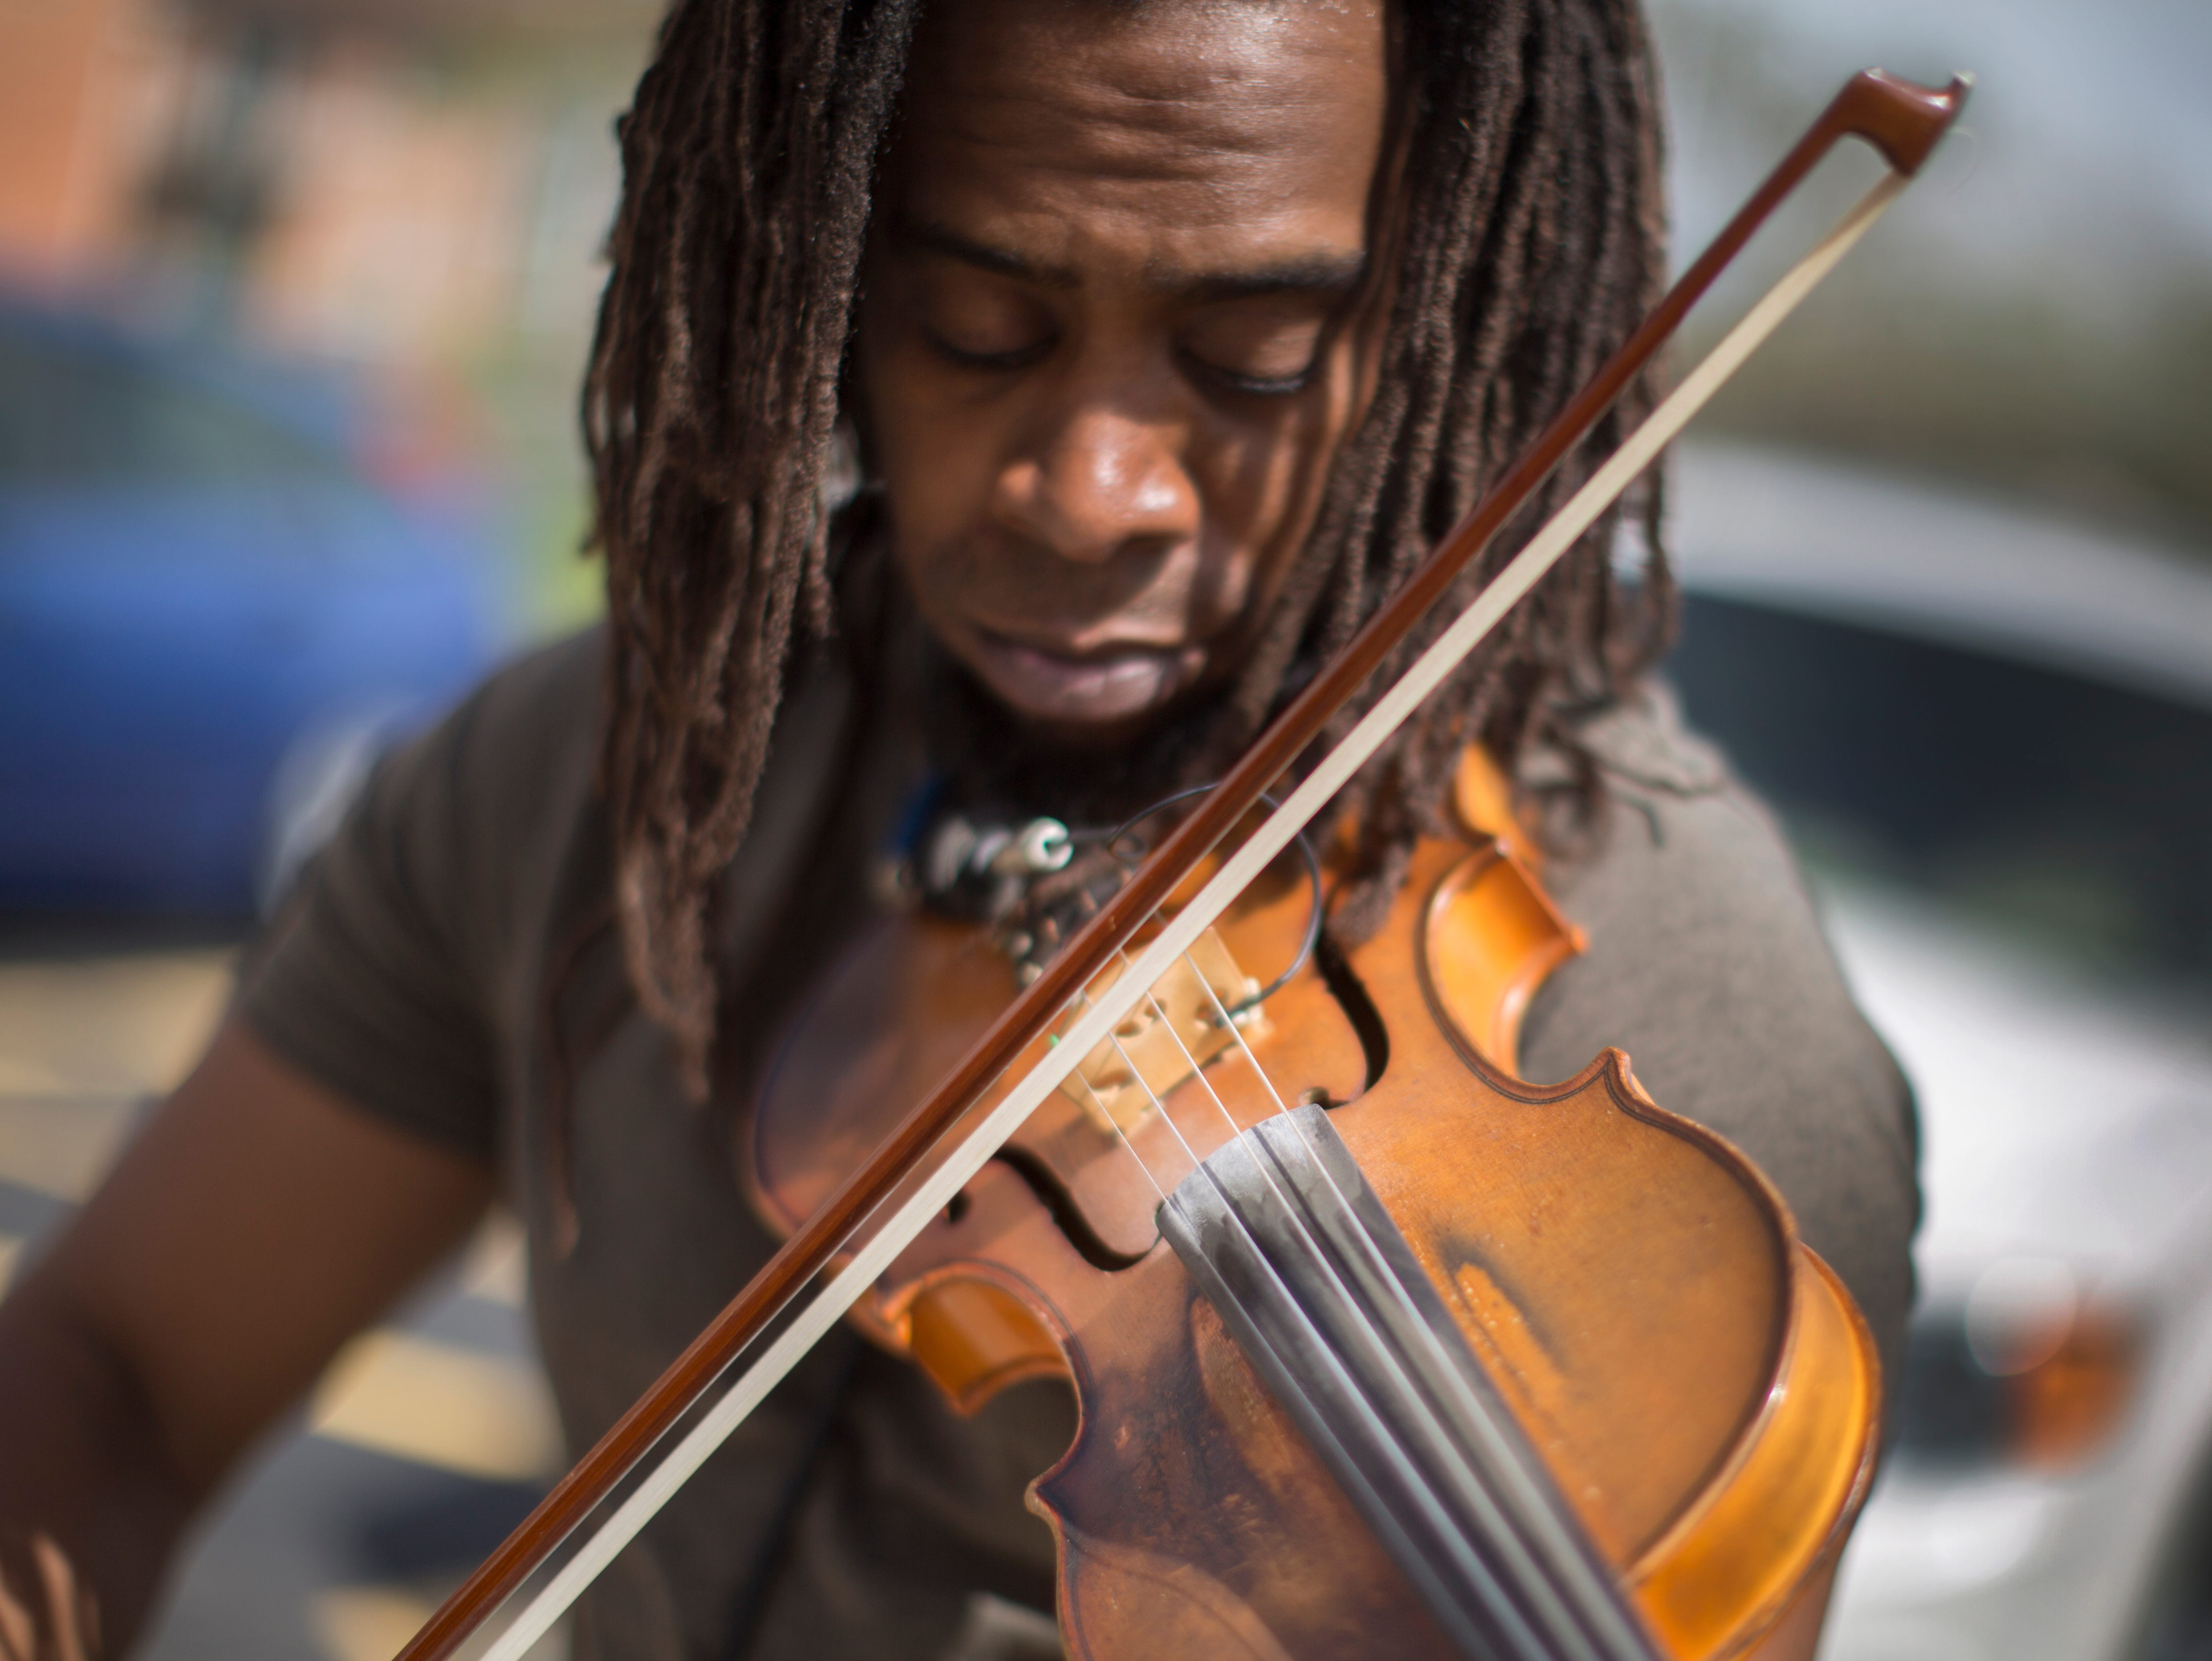 Preston Charles, III, of Silverton, performs his own music on the violin during the healing vigil at St. Paul Village in Madisonville, Saturday, April 13. The Cincinnati chapter of Crime Survivors for Safety and Justice were taking part in the national healing vigil day that gave survivors an opportunity to share their story. Charles, himself a survivor, said, 'The evils in our world can be fought and it's fought from people like you all. Because you actually survive and speak about it. It provides healing and strength to others.'